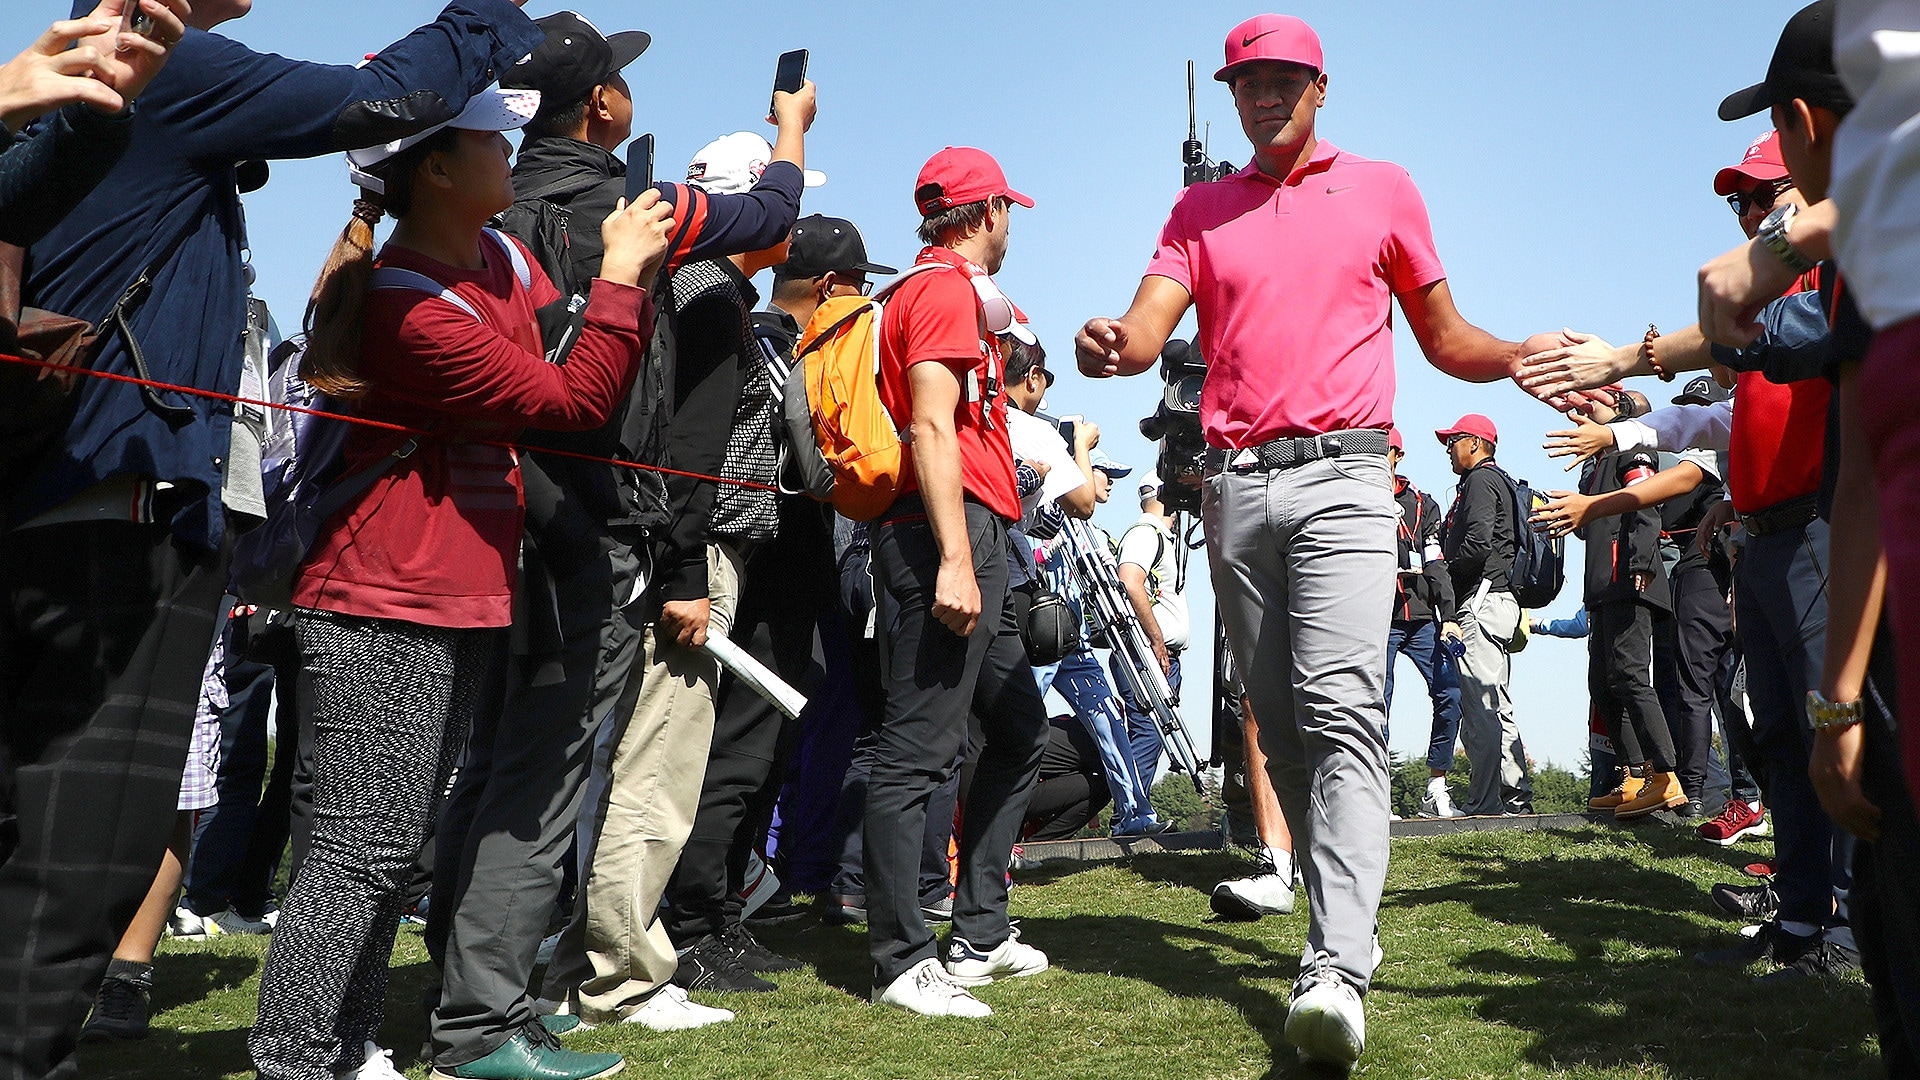 Tony Finau in Rd. 3 of the 2018 WGC-HSBC Champions